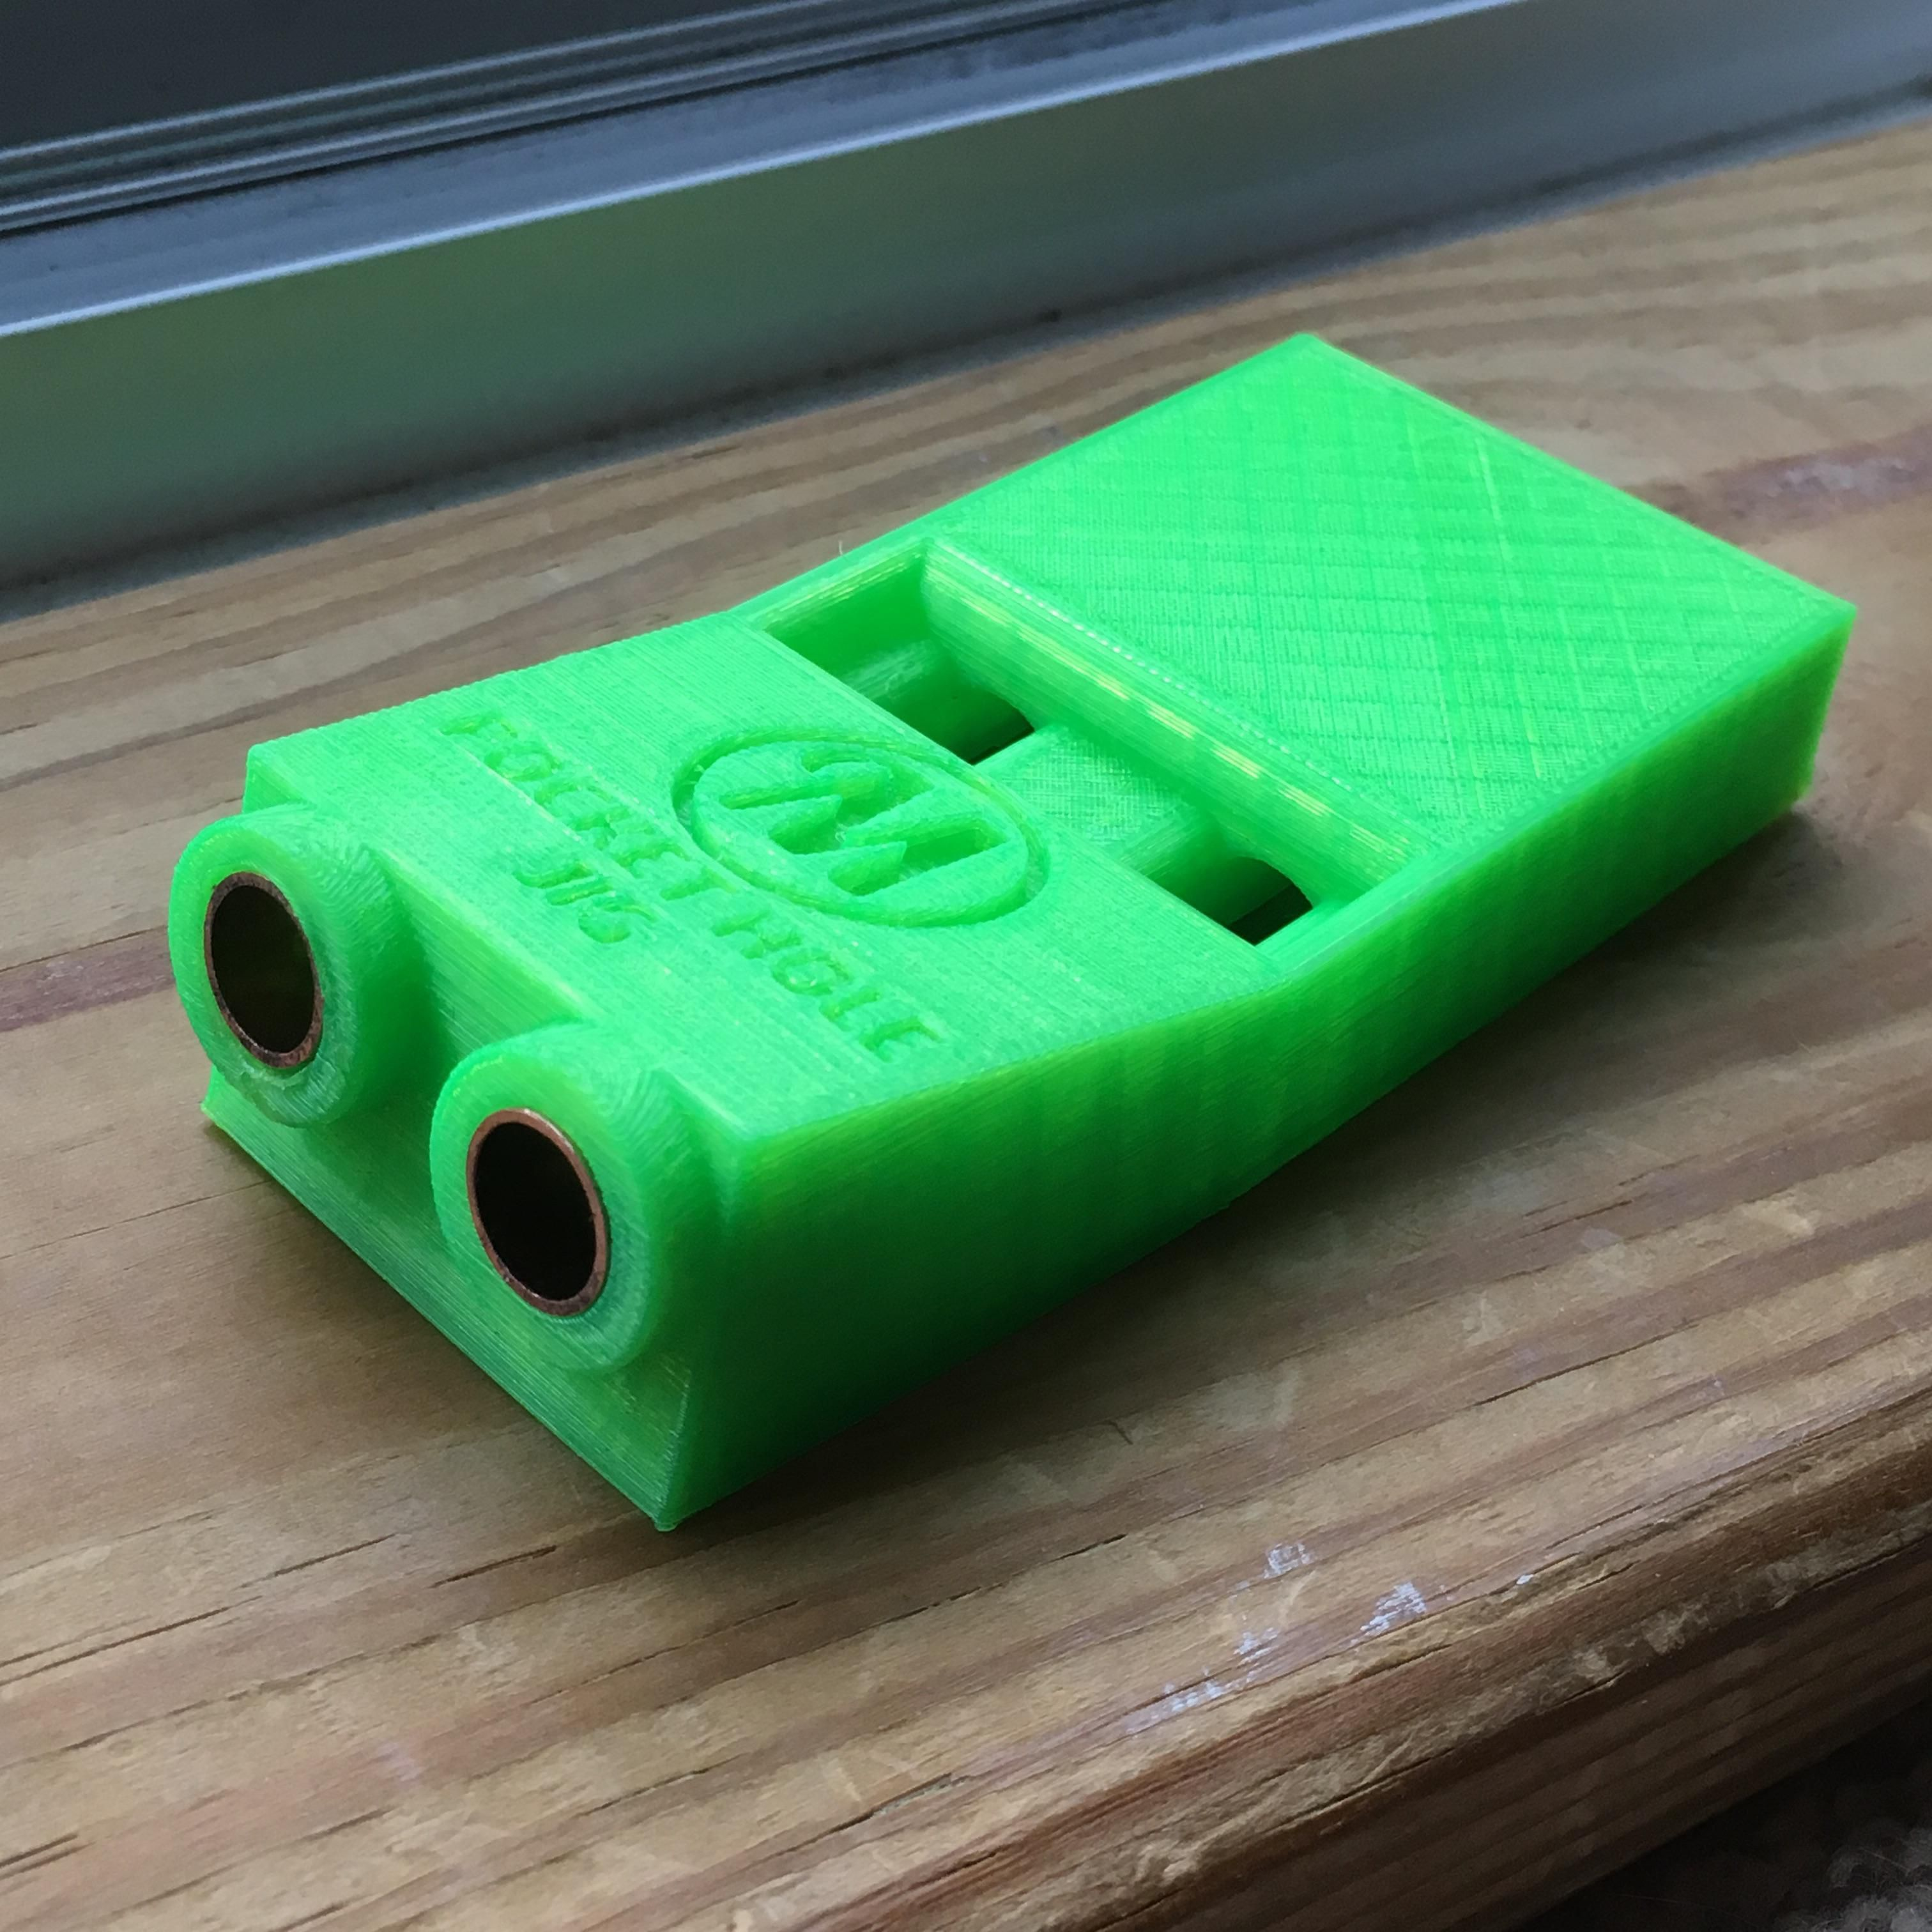 Didn't feel like buying a pocket hole jig, so I 3D printed one at the local makerspace (file from thingiverse)